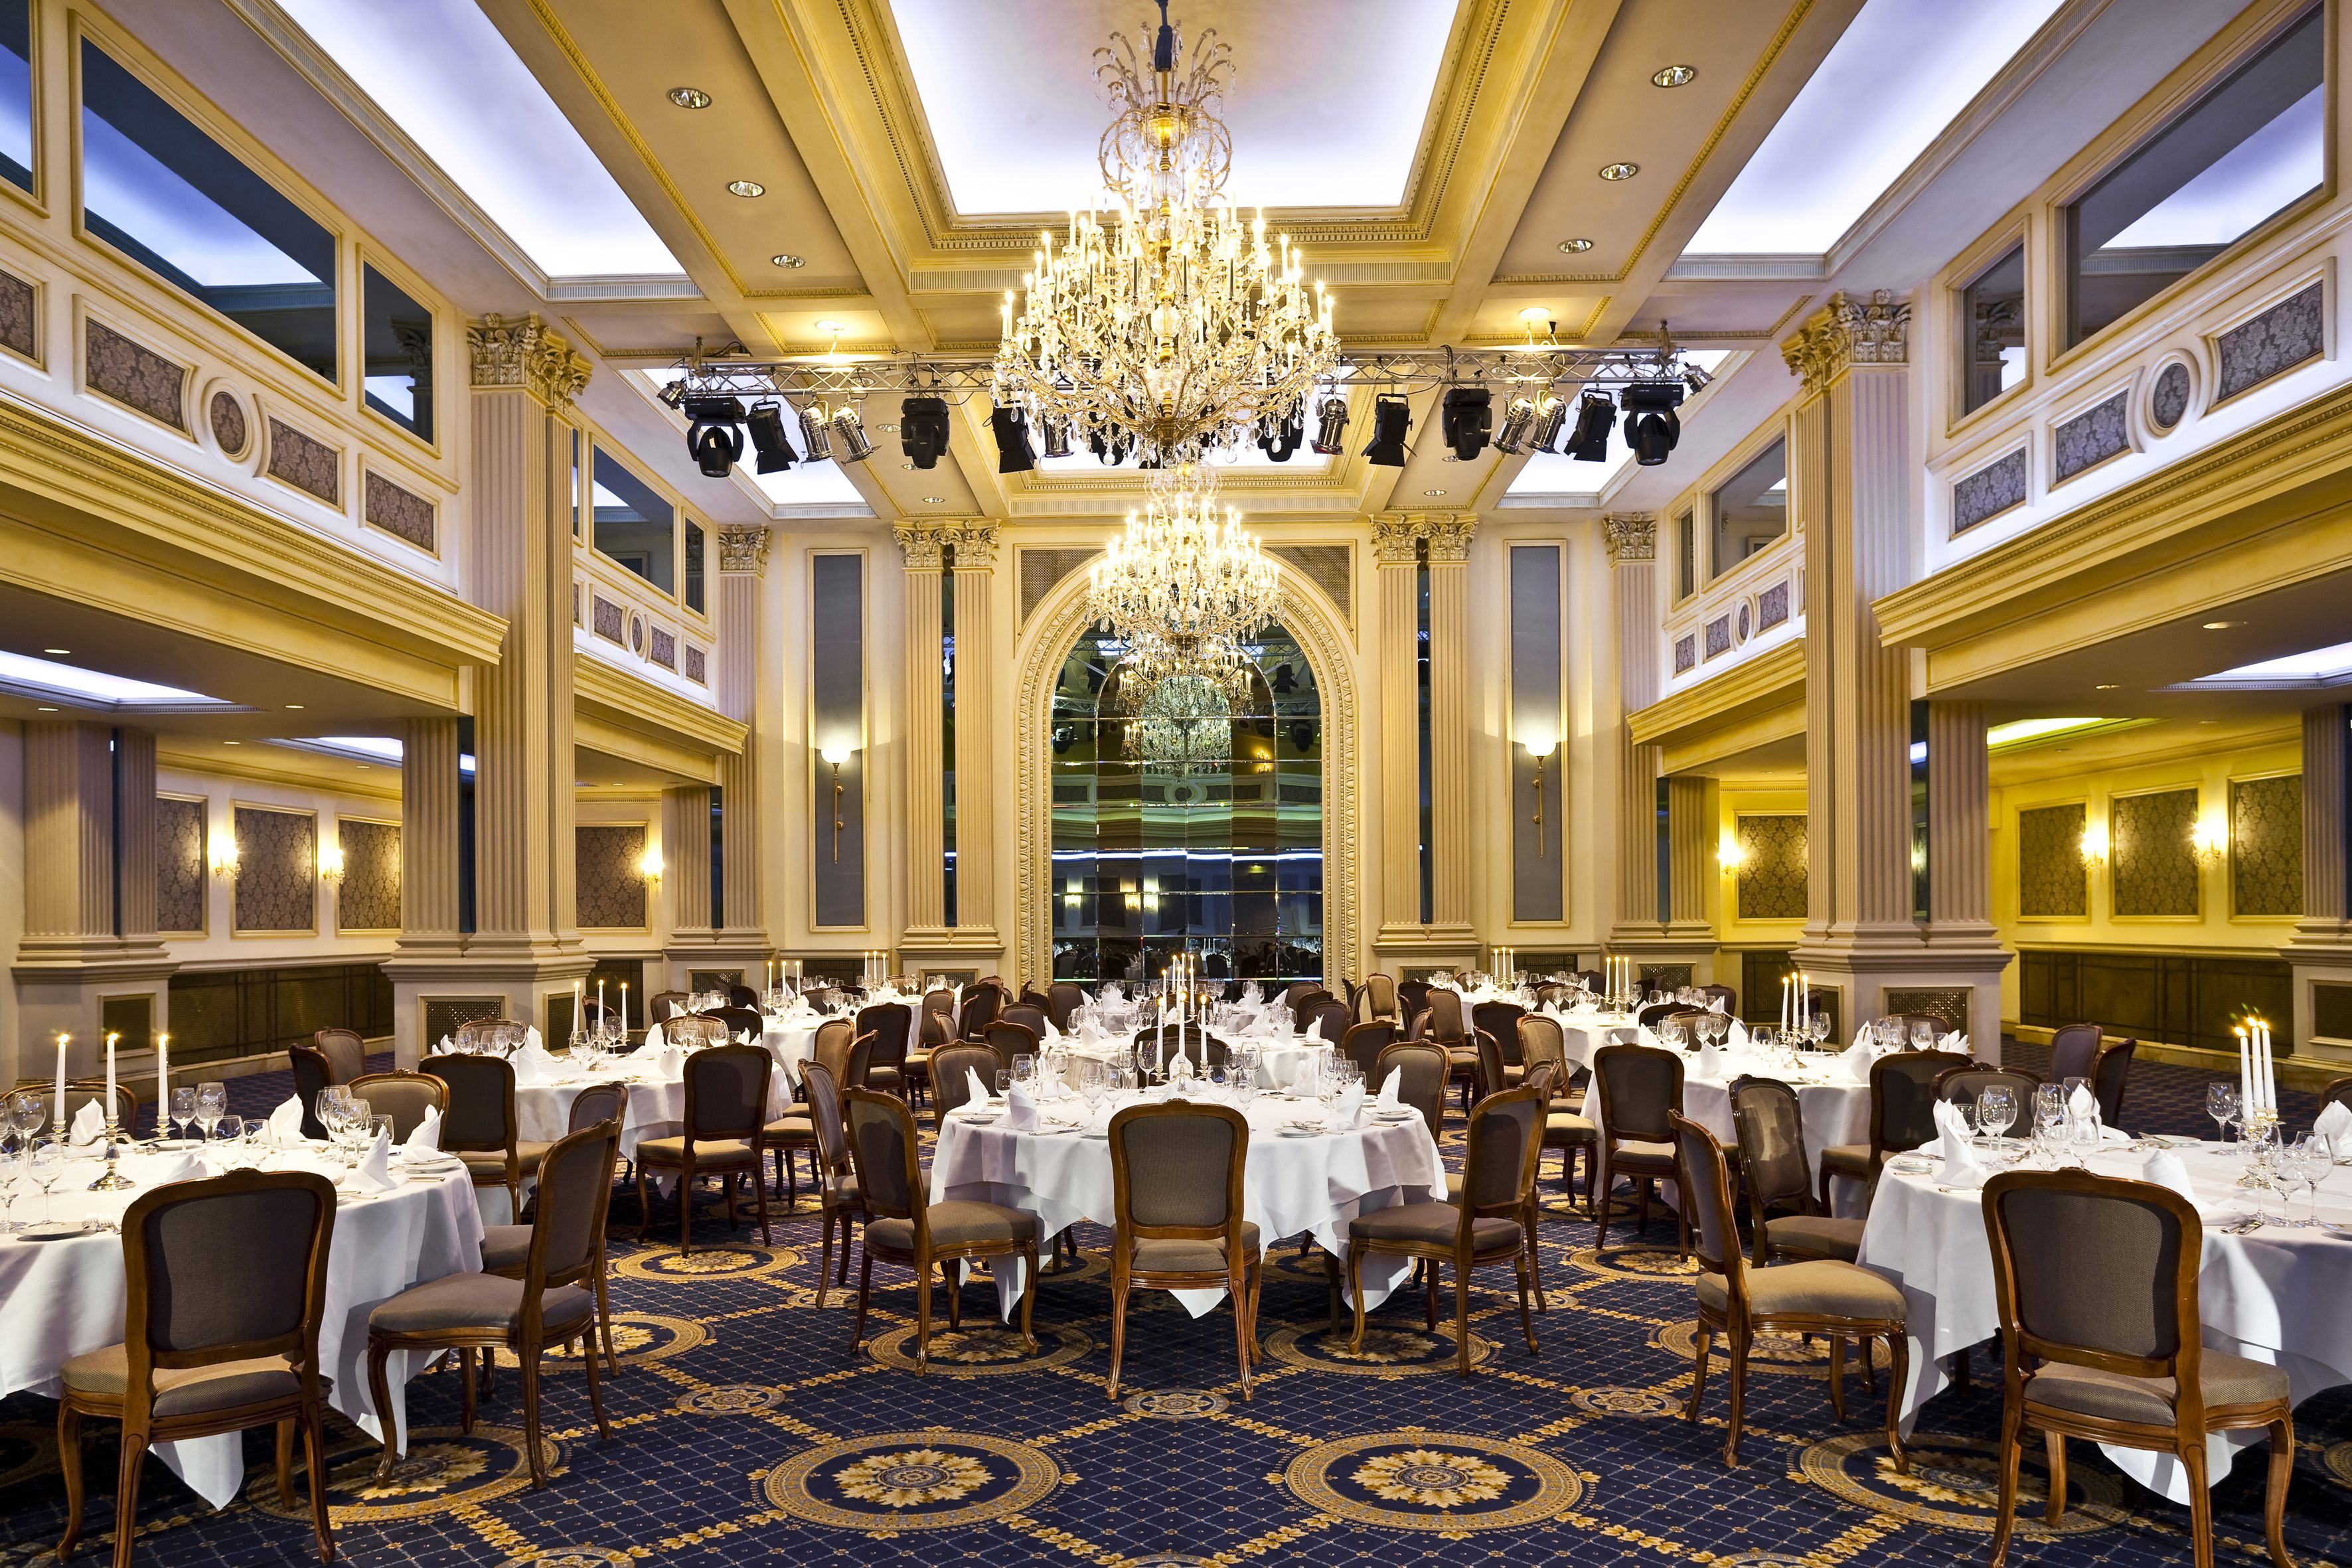 Grand Hotel Wien Luxpitality Hotel Hotel Suites Grand Hotel